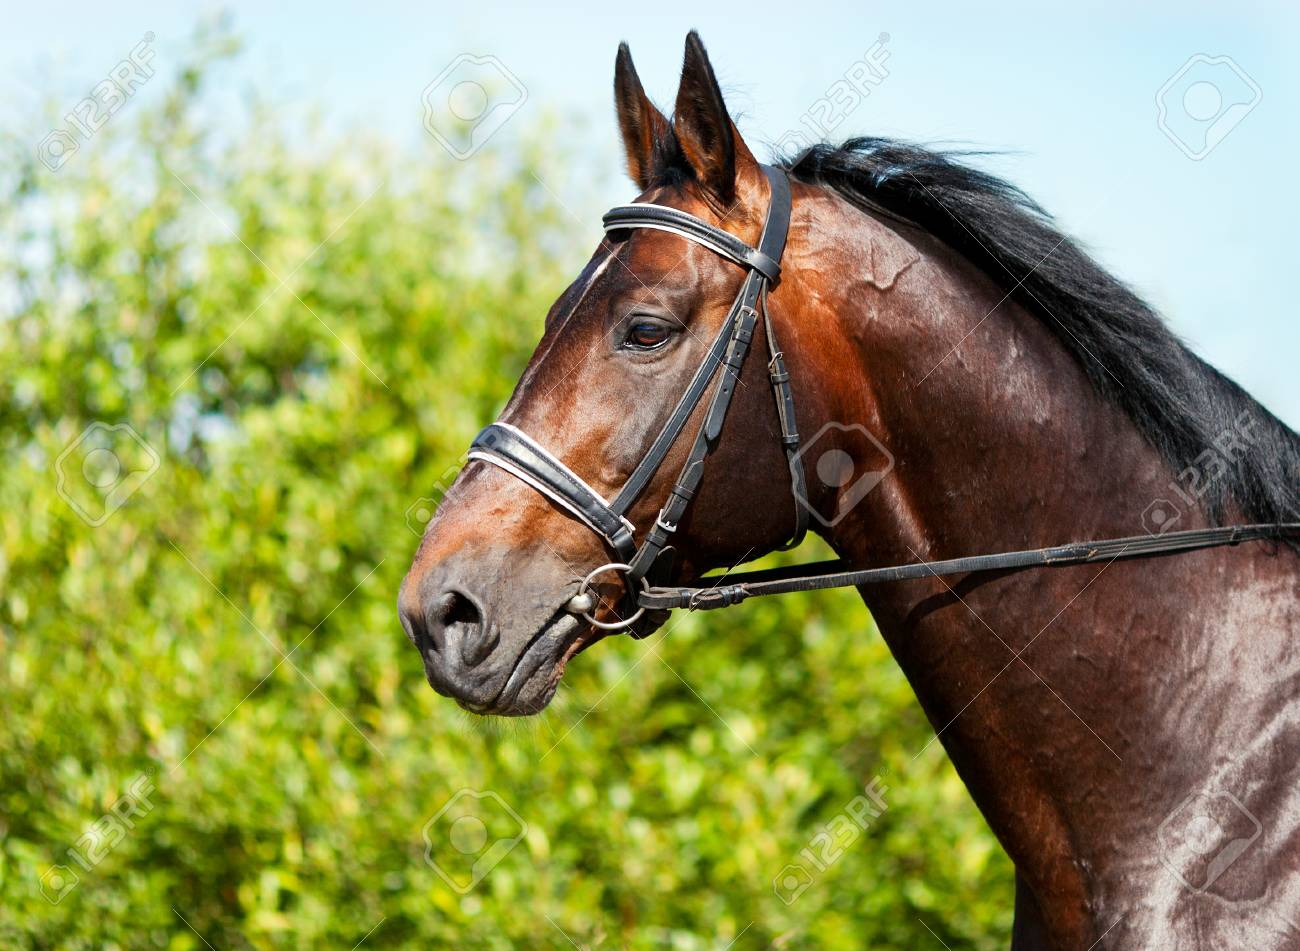 Portrait Of A Dark Bay Horse On A Background Of Green Grass Stock Photo Picture And Royalty Free Image Image 37689052